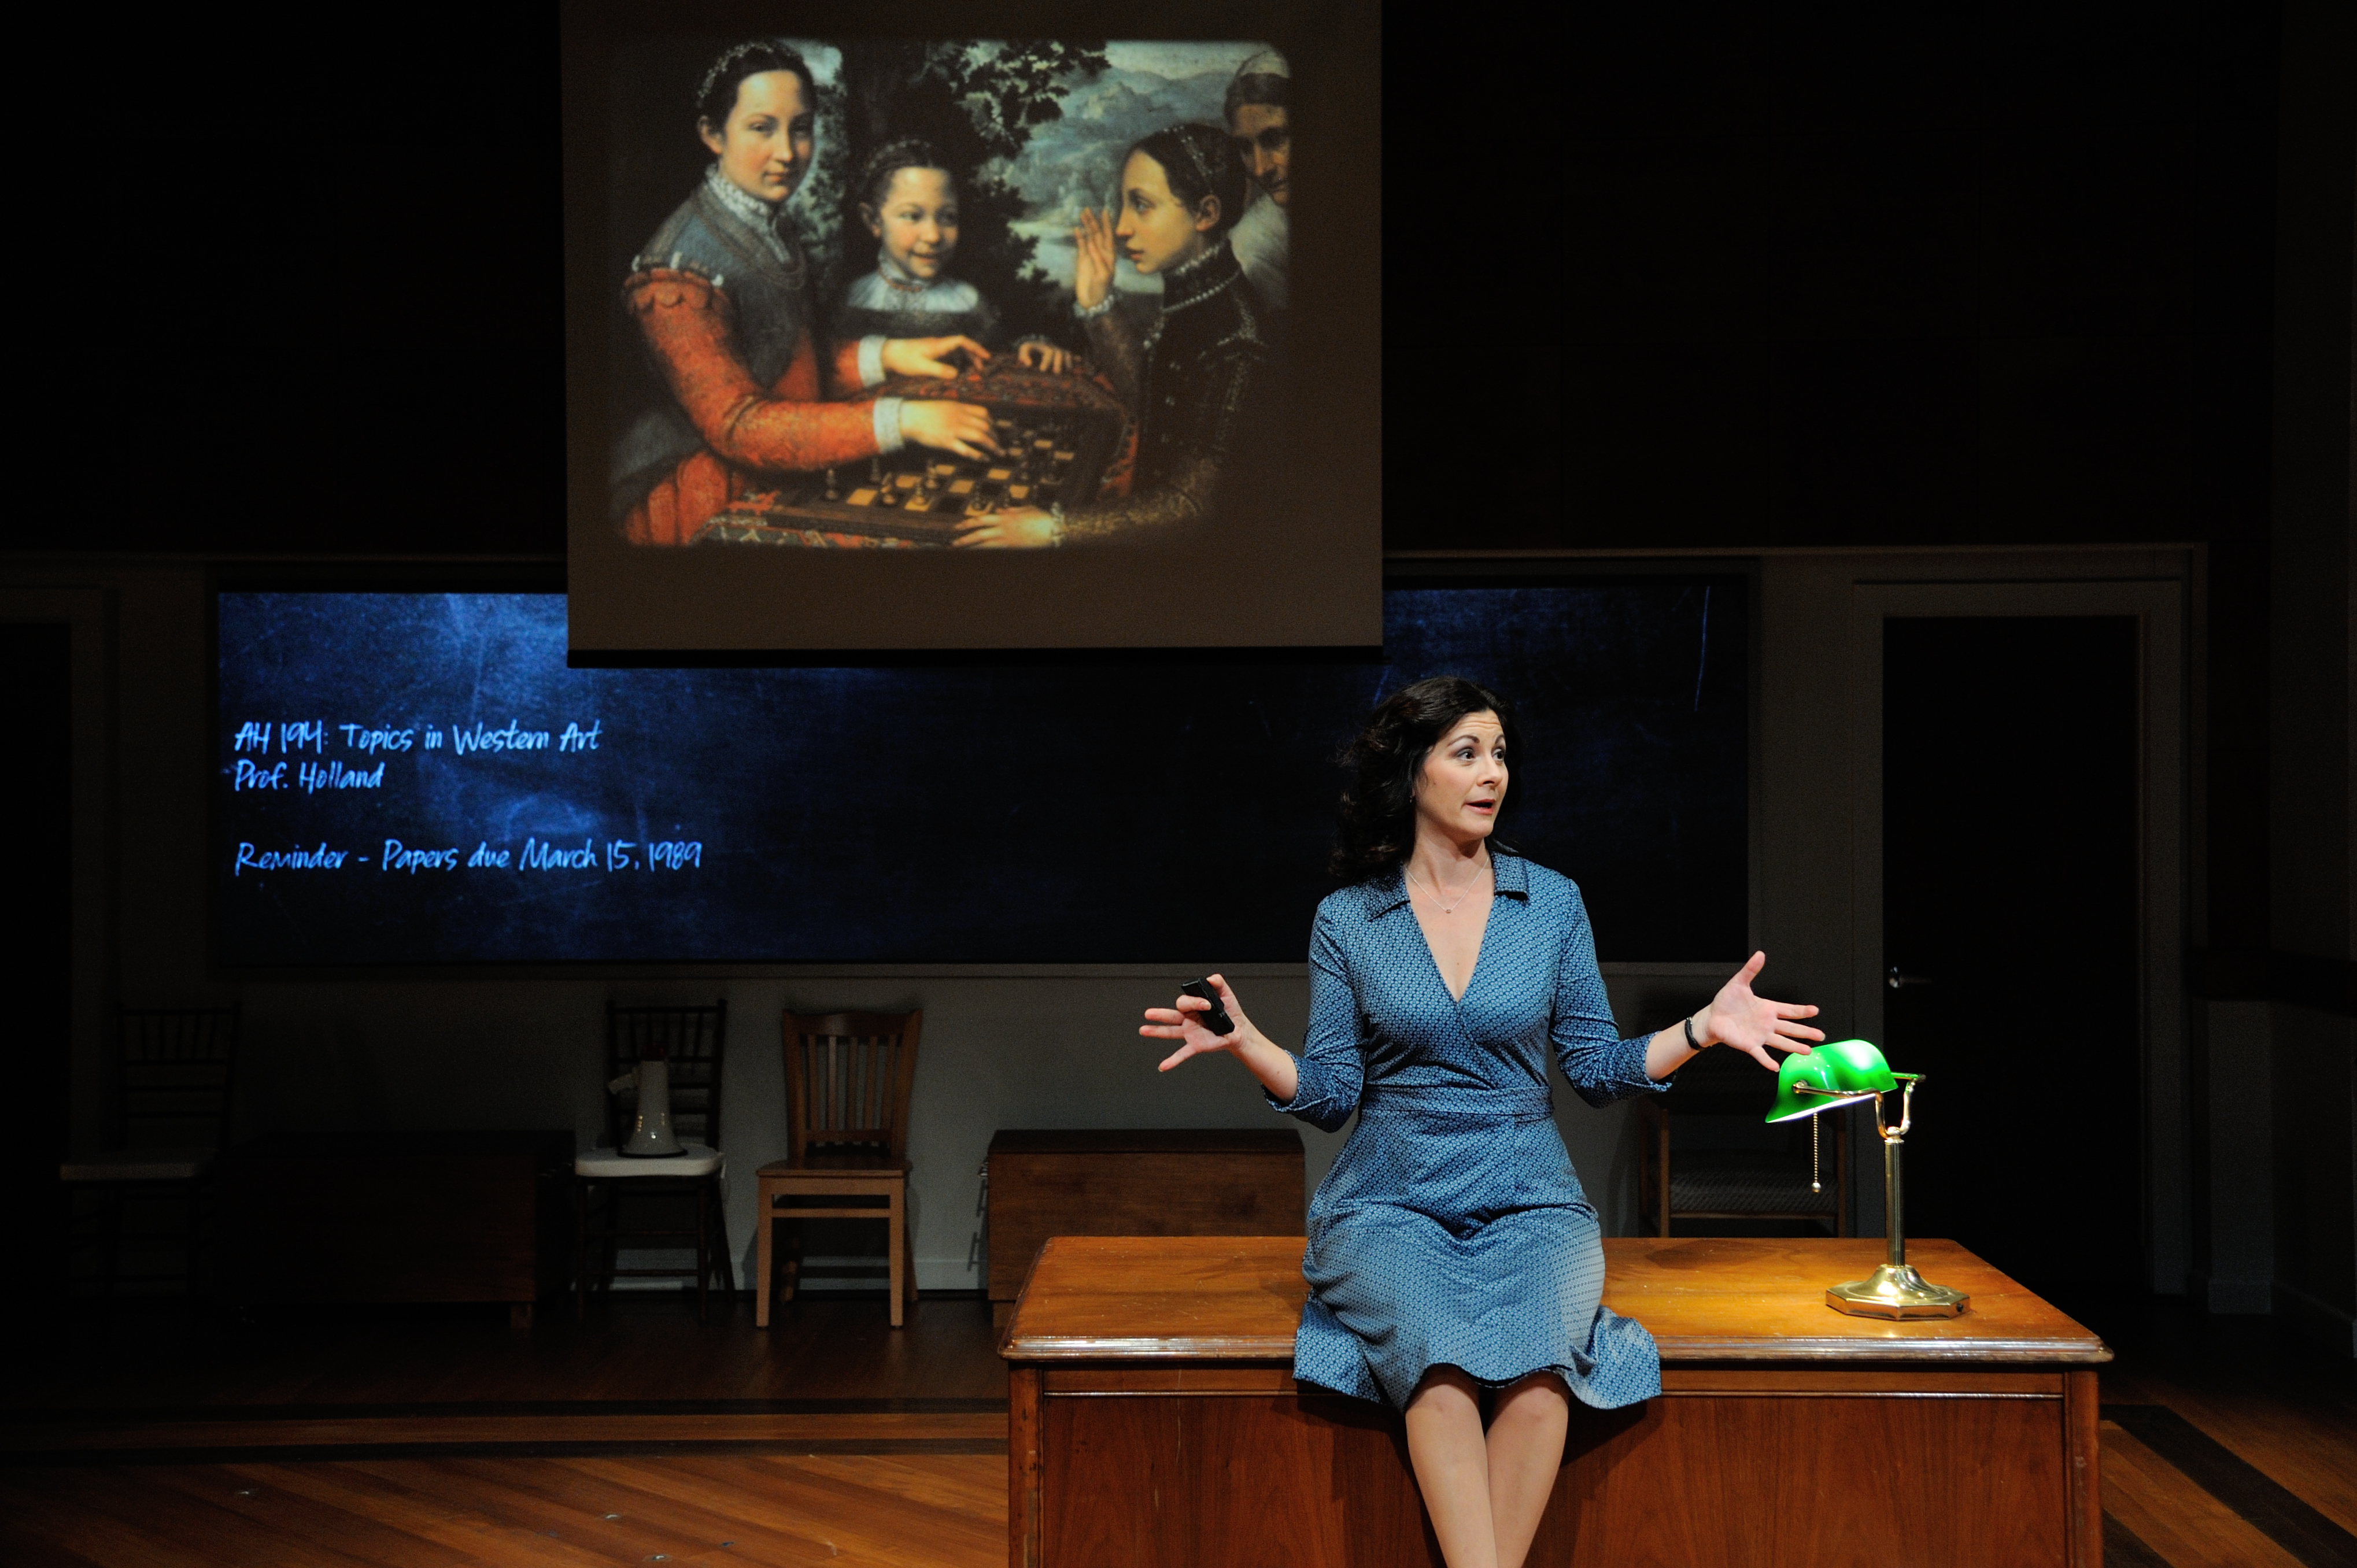 bill gale theater reviews rhode island public radio trinity rep s heidi chronicles a first rate production that leaves our reviewer cold